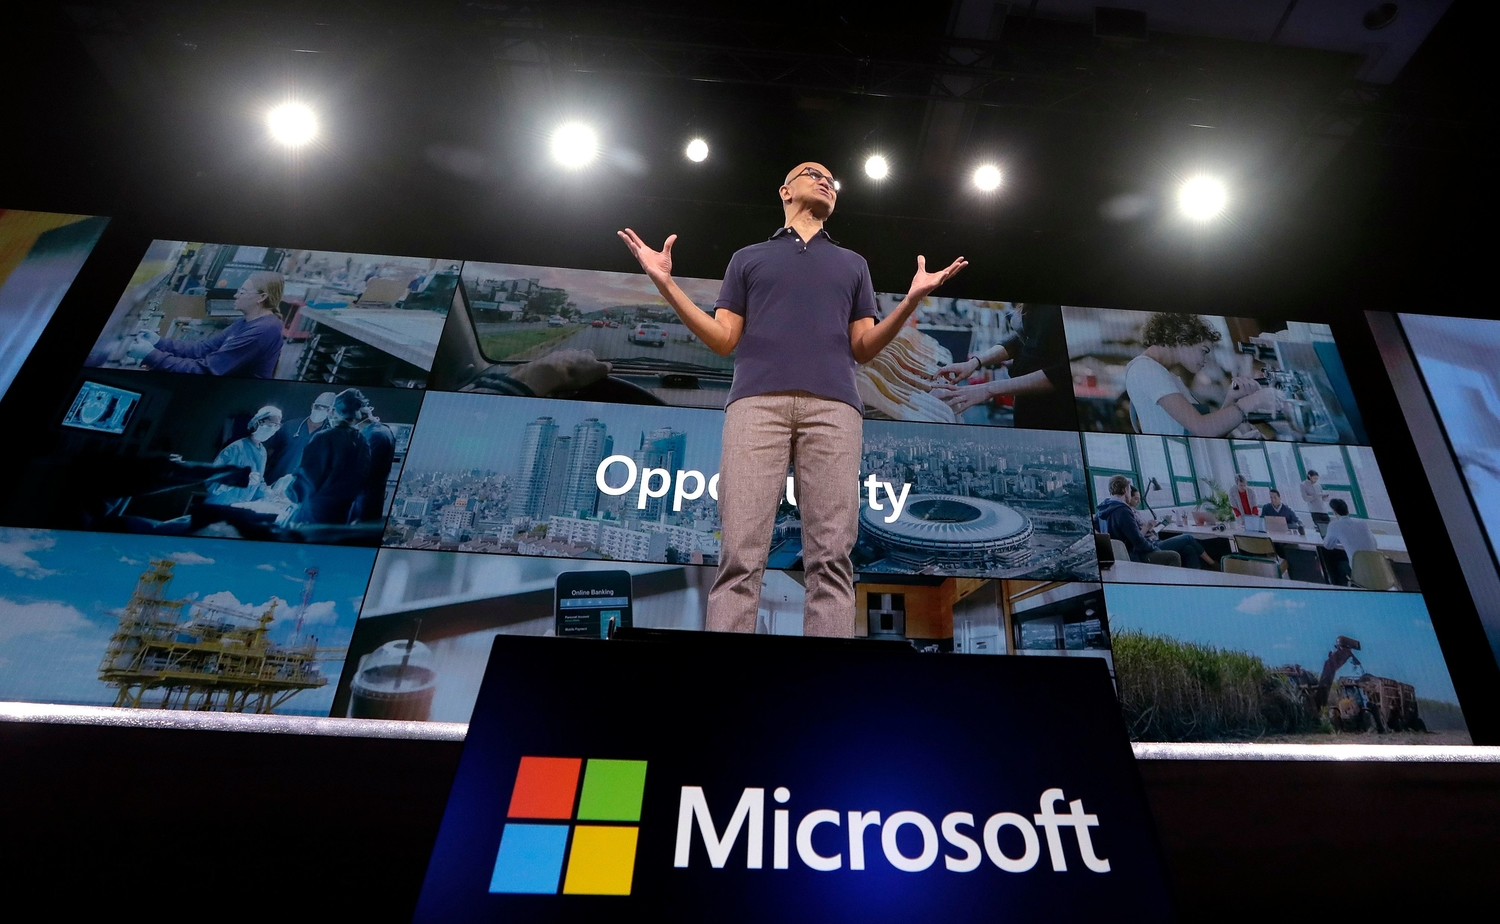 Microsoft's new supercomputer will train AI to outperform humans – BGR